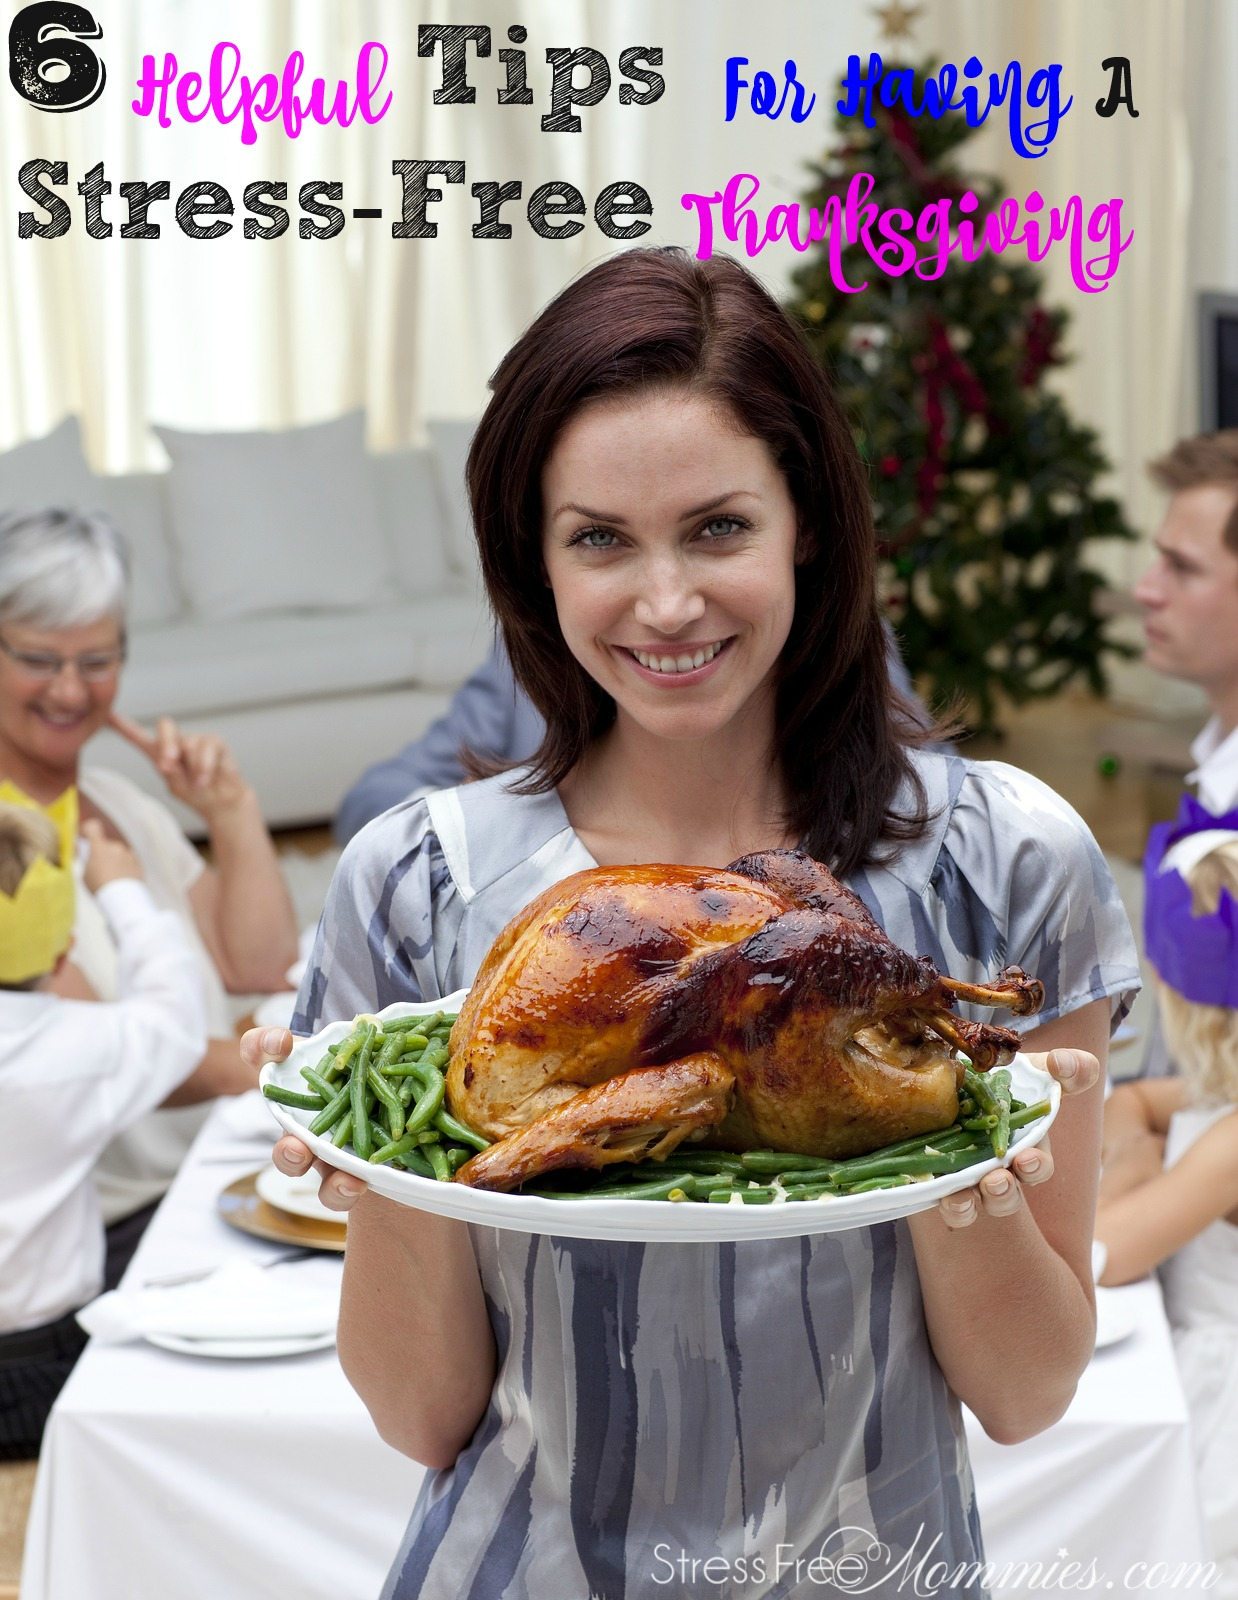 6 Helpful Tips For Having A Stress Free Thanksgiving